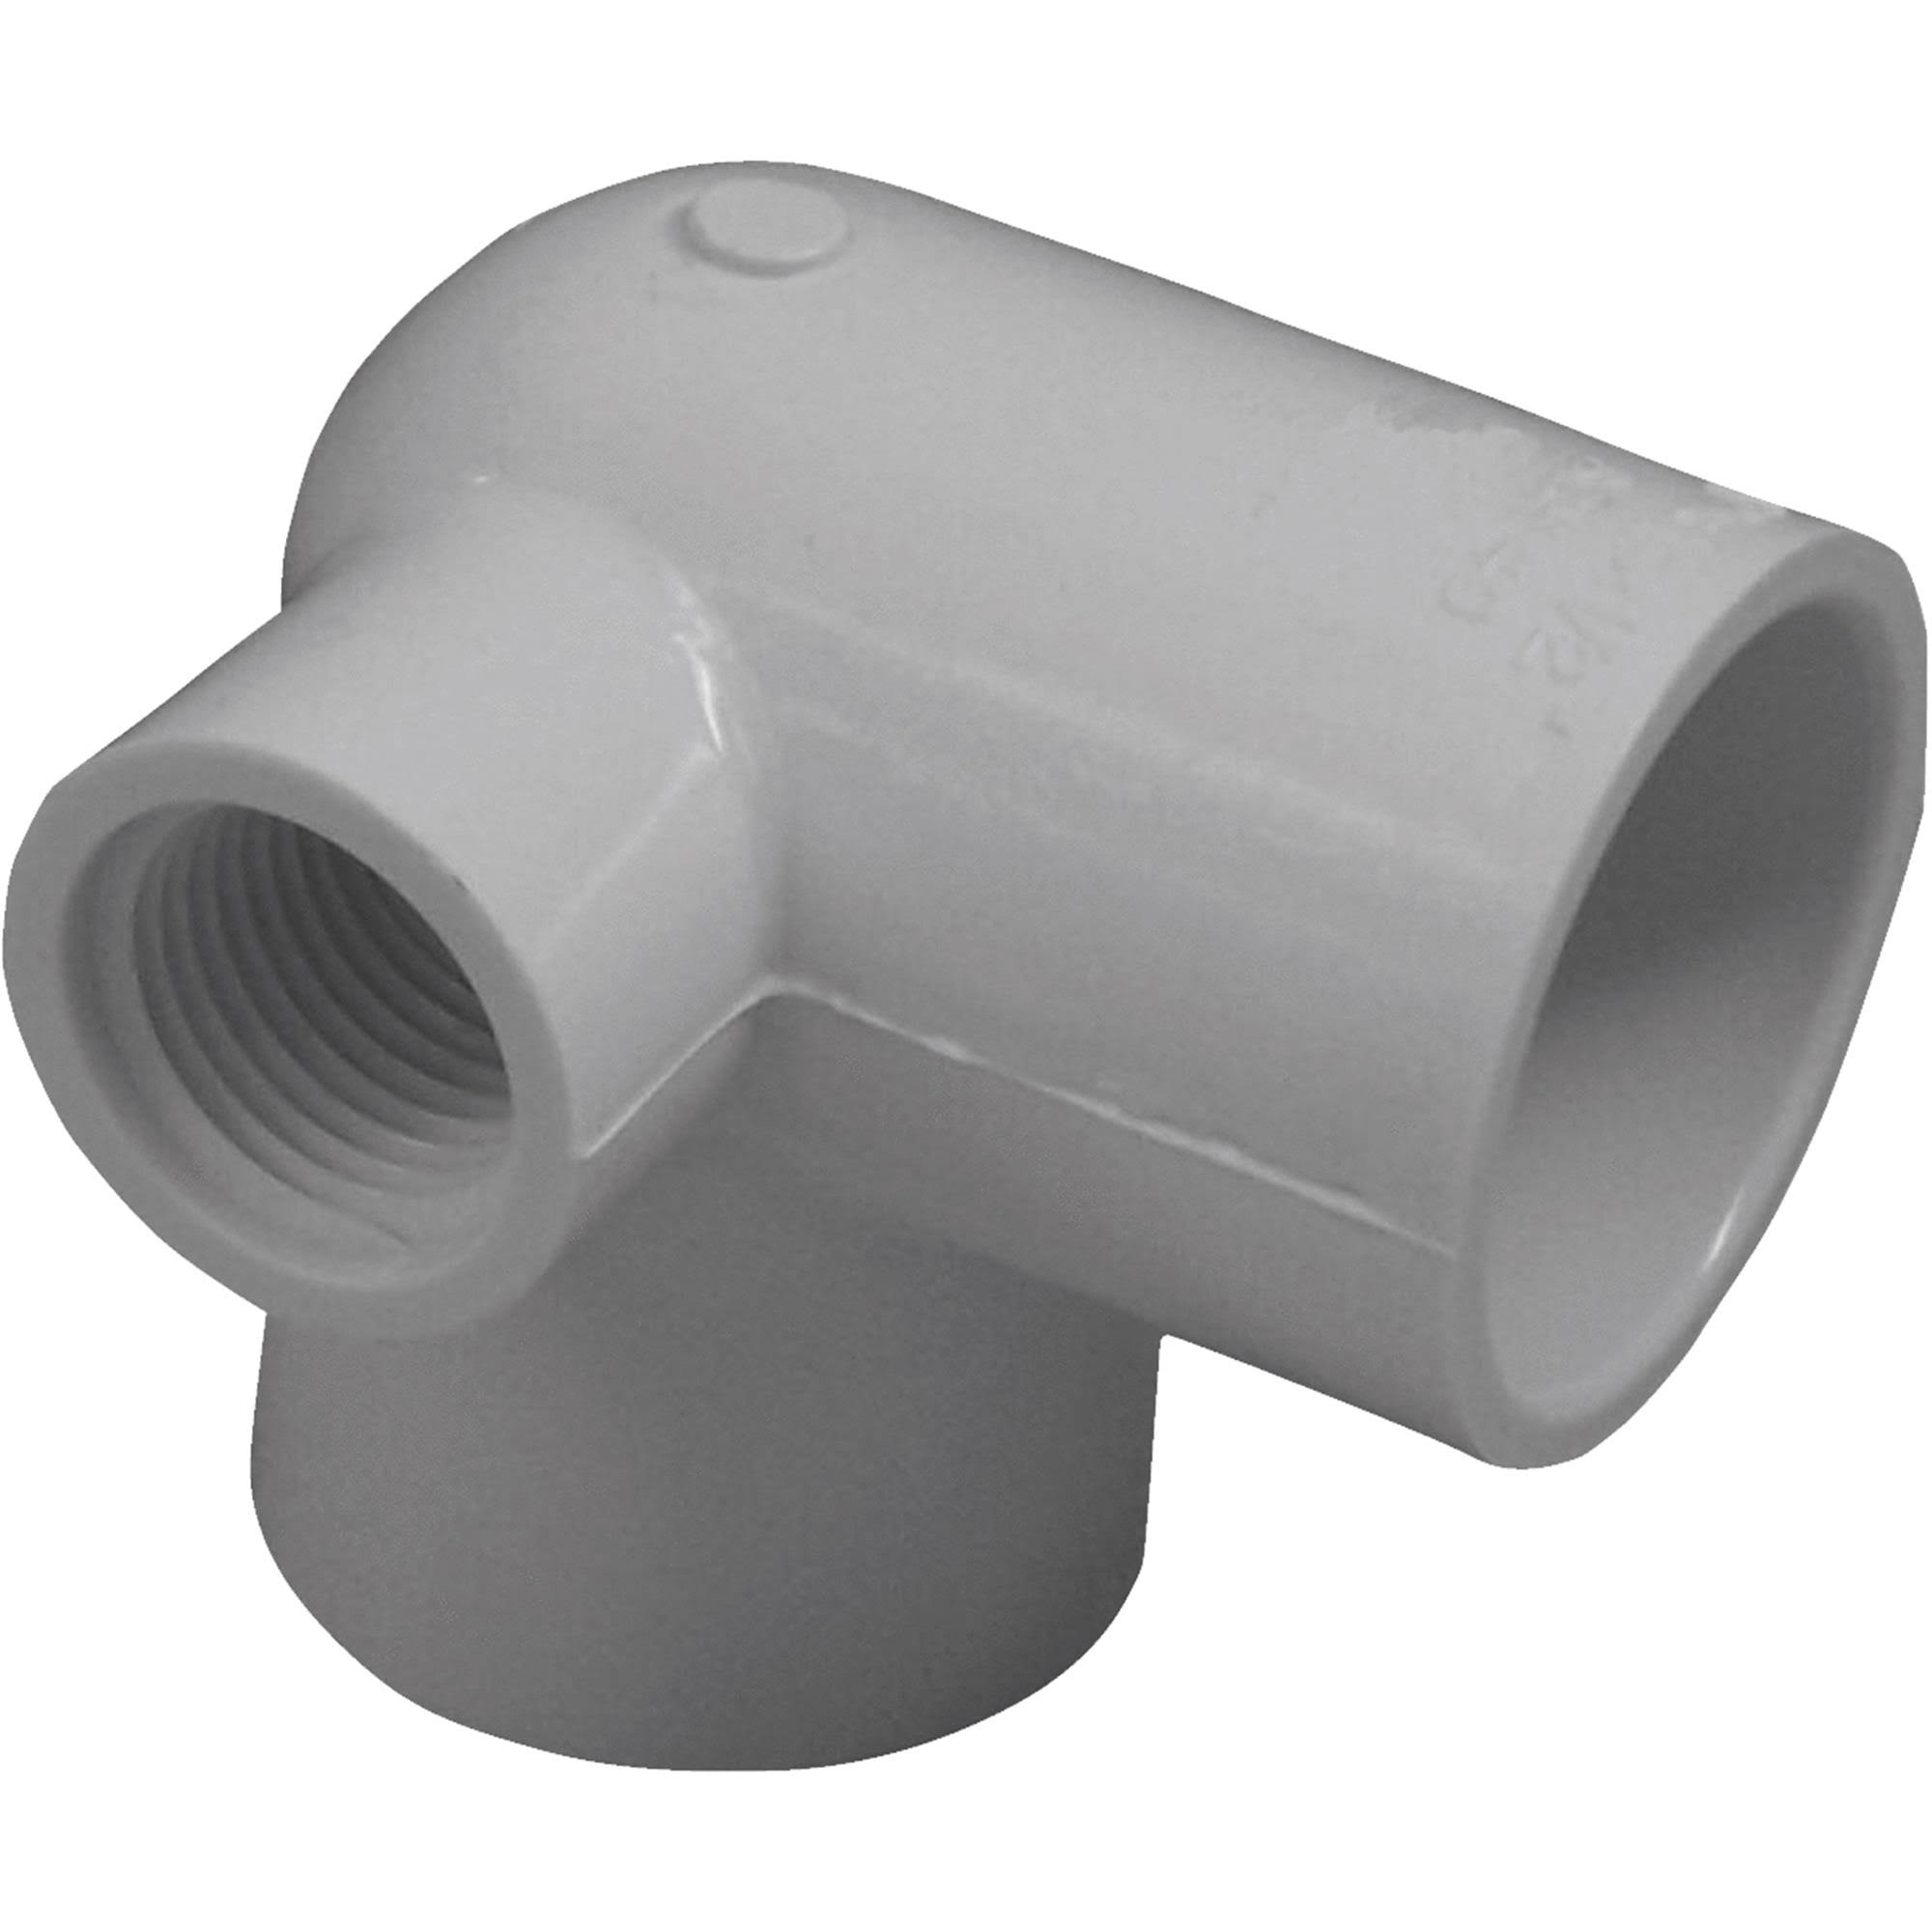 Genova Products Elbow Pvc - 90 Degrees